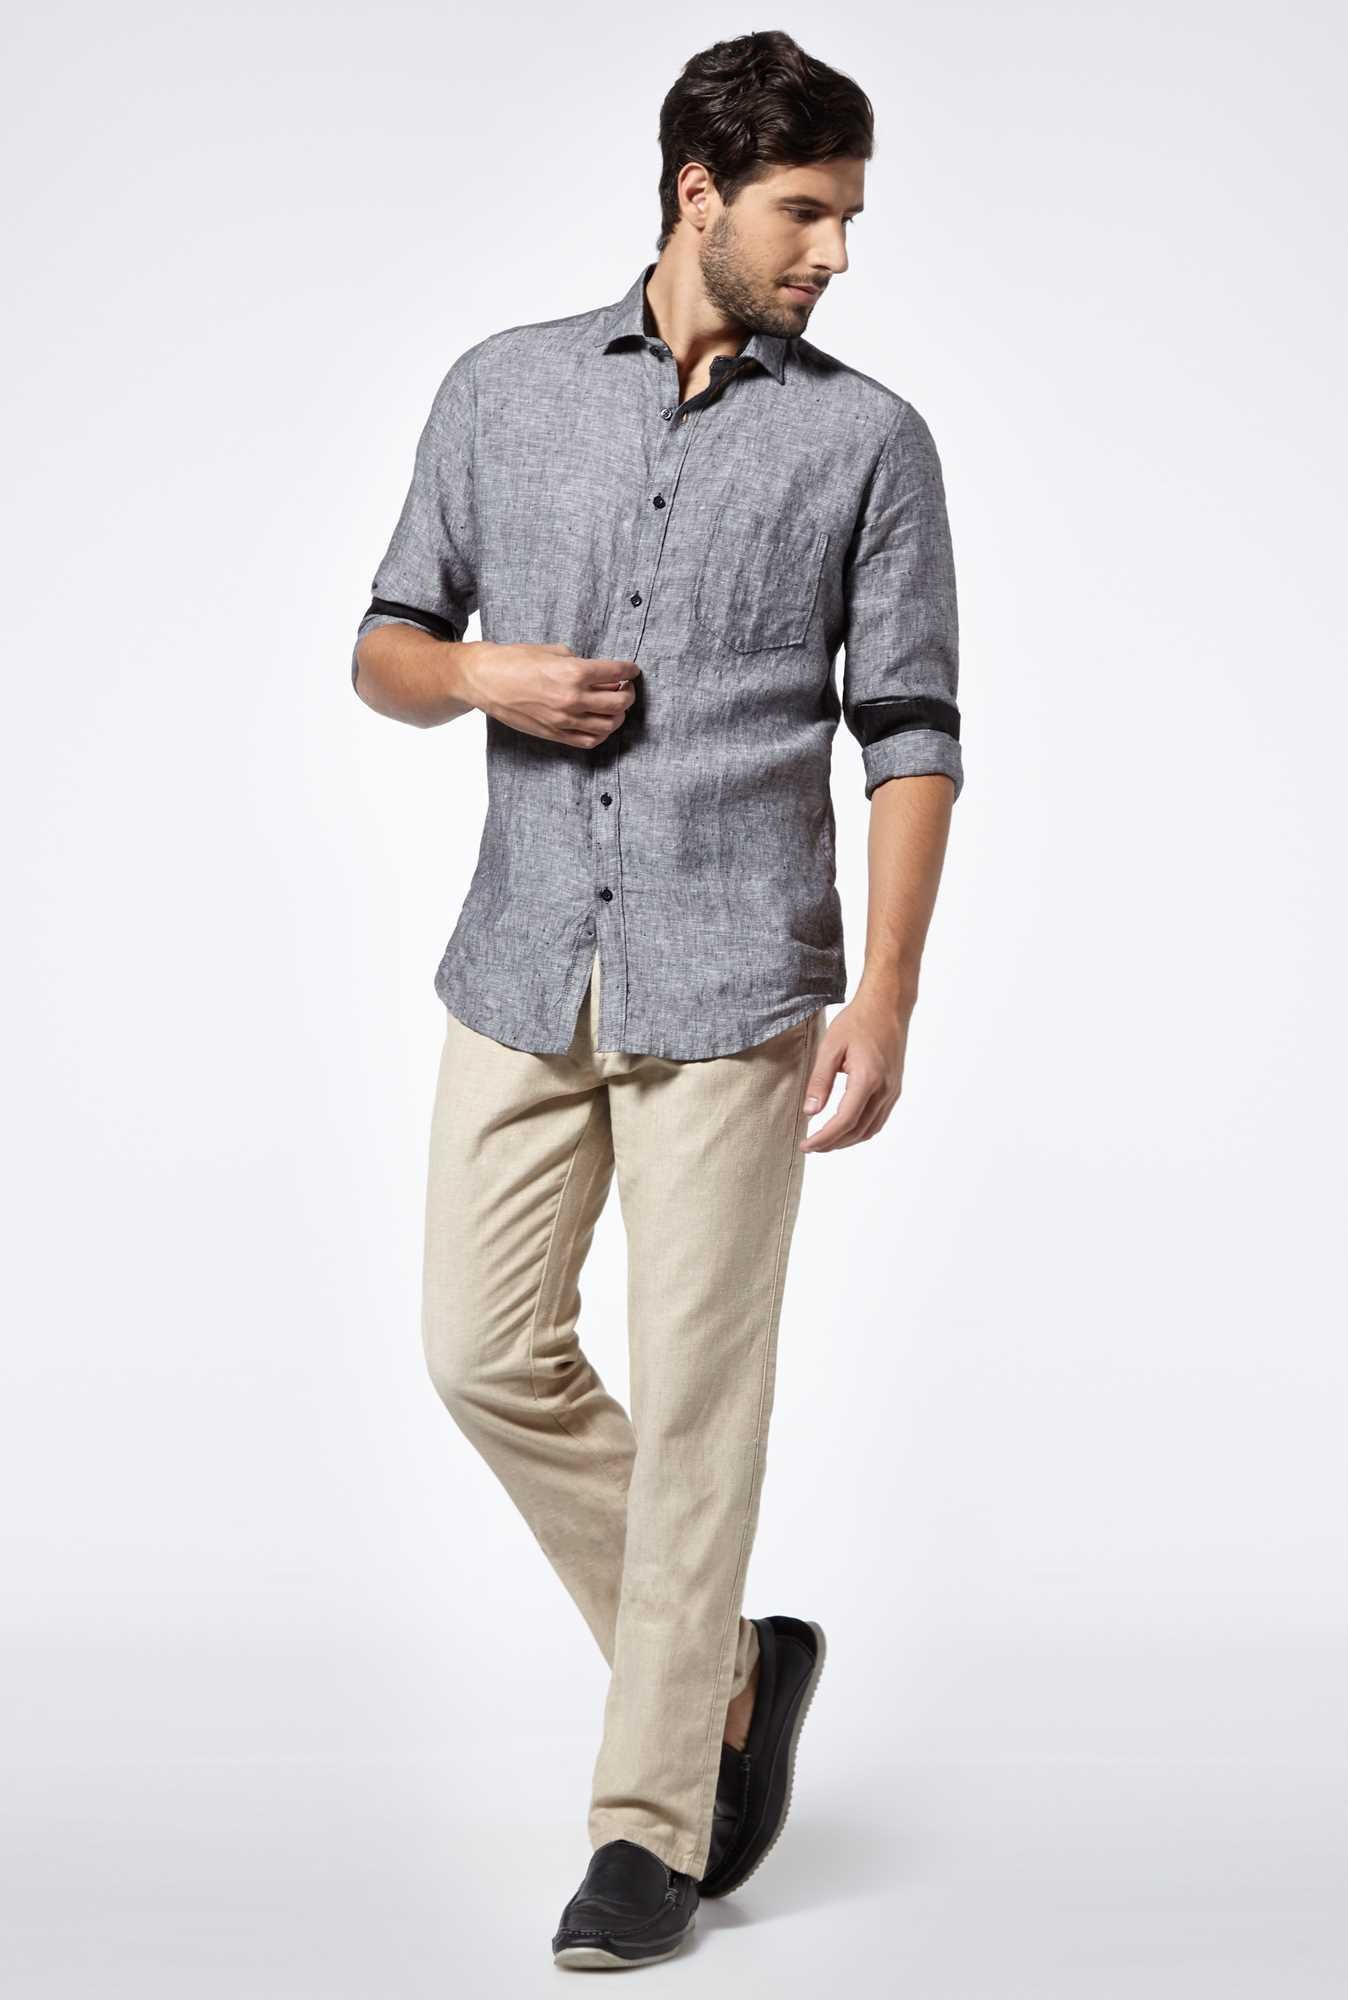 Easies Coal Black Linen Casual Shirt